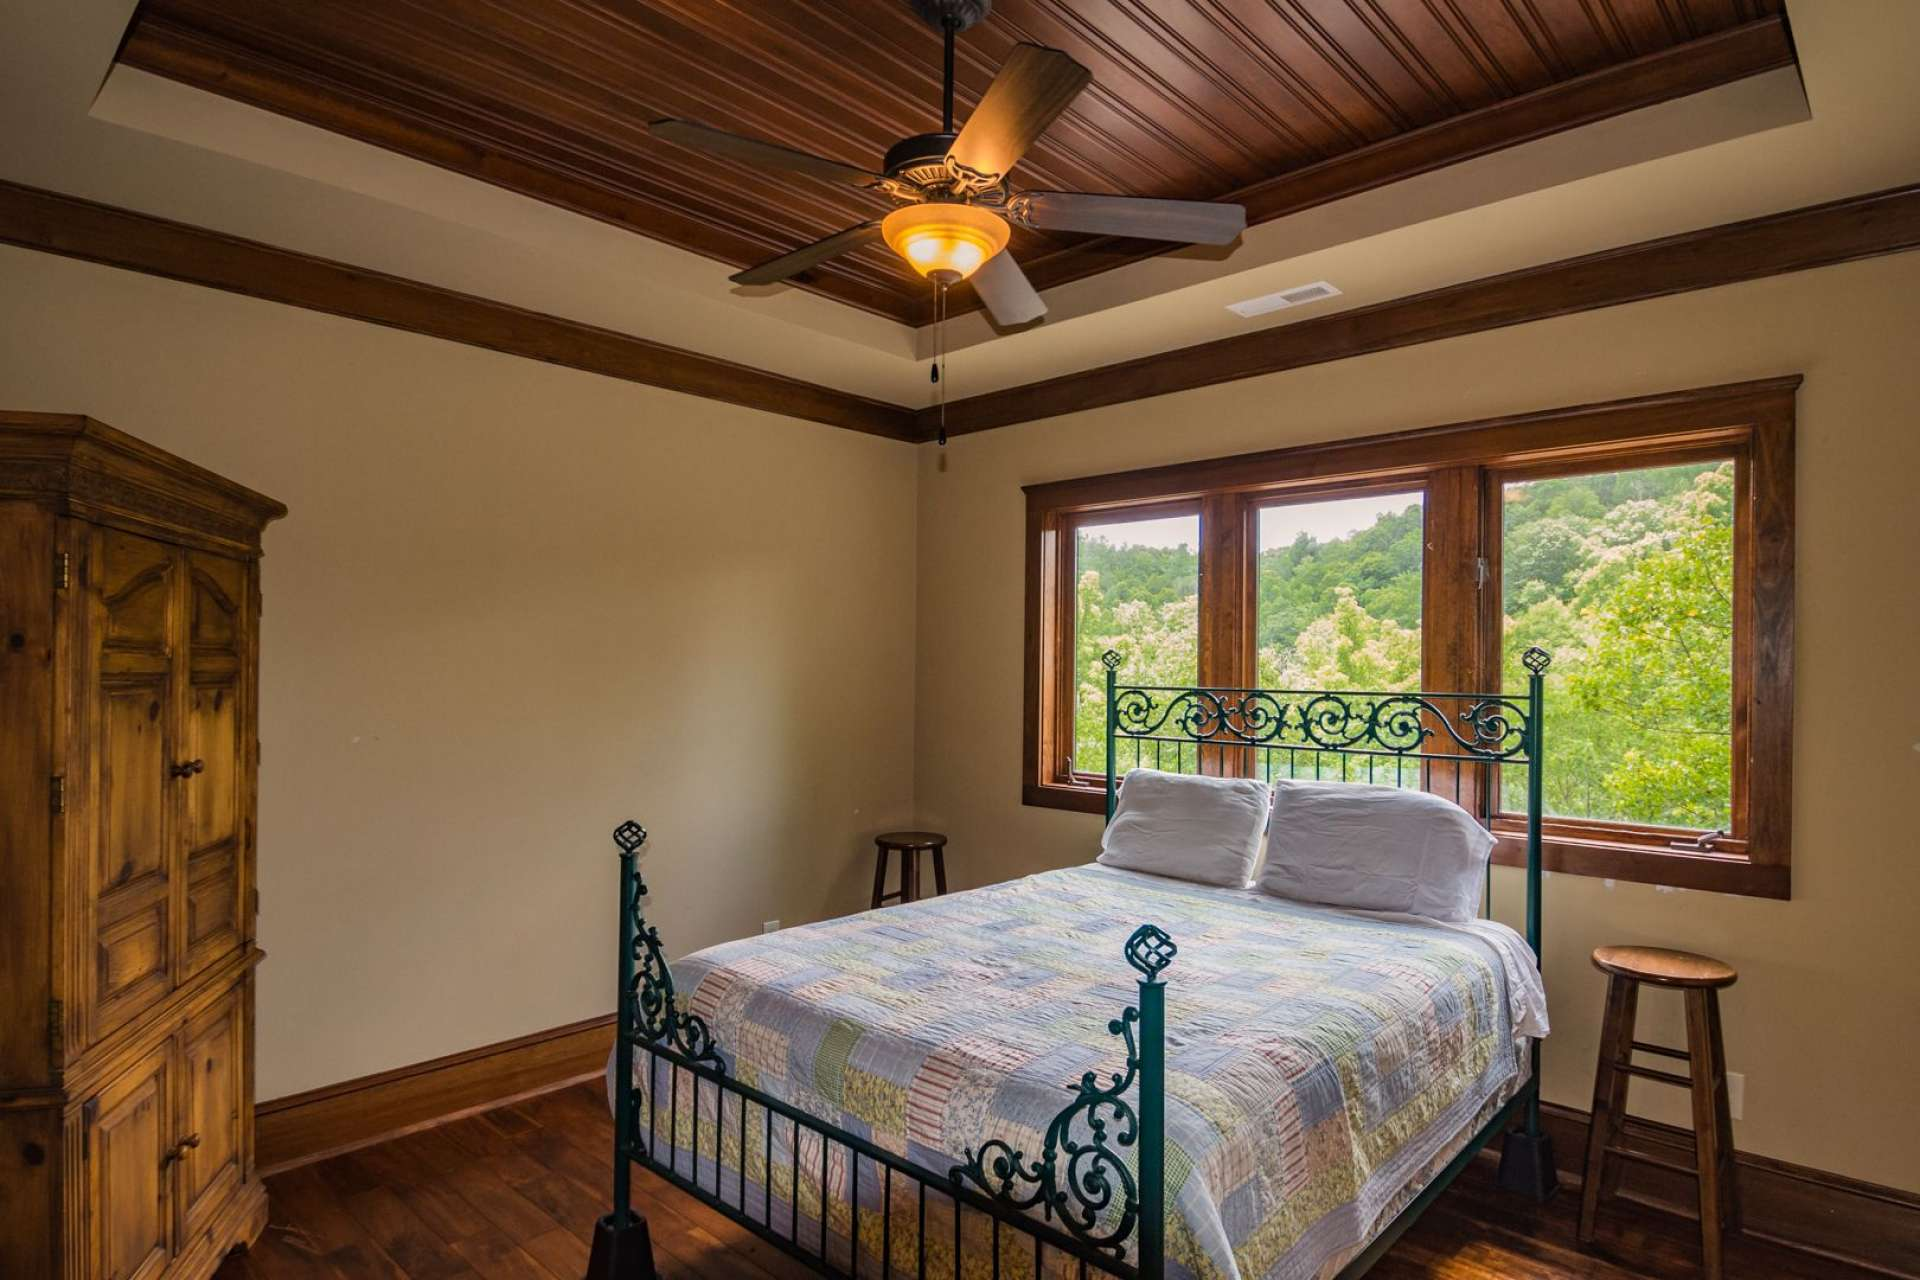 The beautiful floors and details like the ceilings continue to the upper level where you will find three bedrooms and three baths.